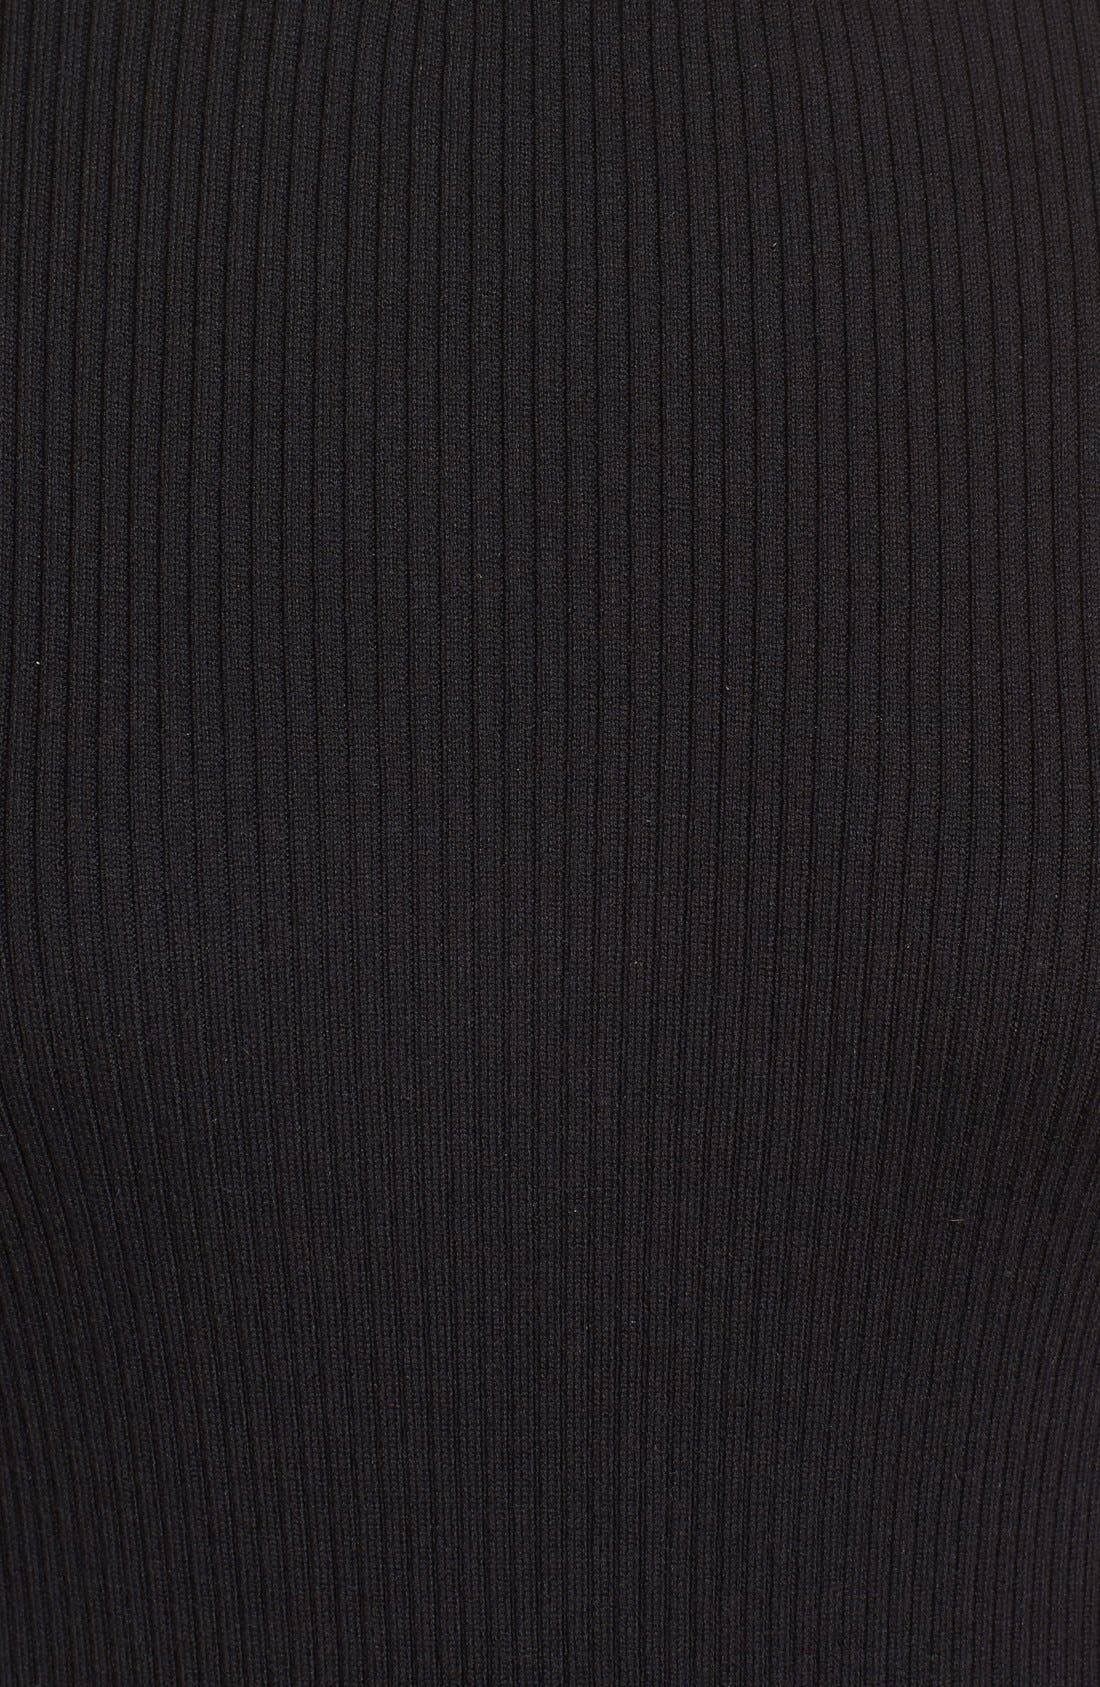 Ribbed Cotton Turtleneck Sweater,                             Alternate thumbnail 5, color,                             006